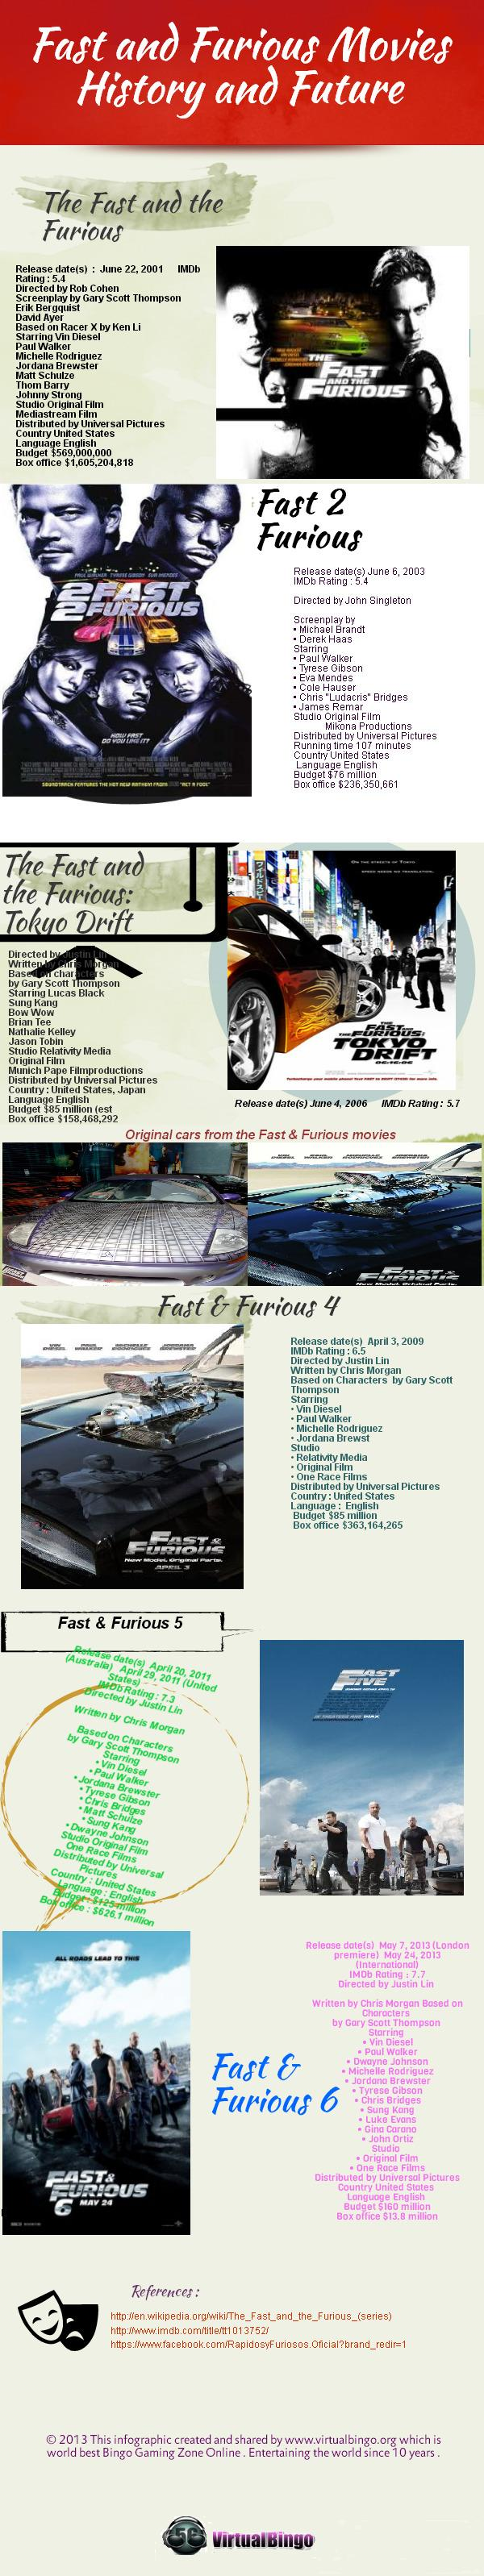 Fast and Furious Infographic